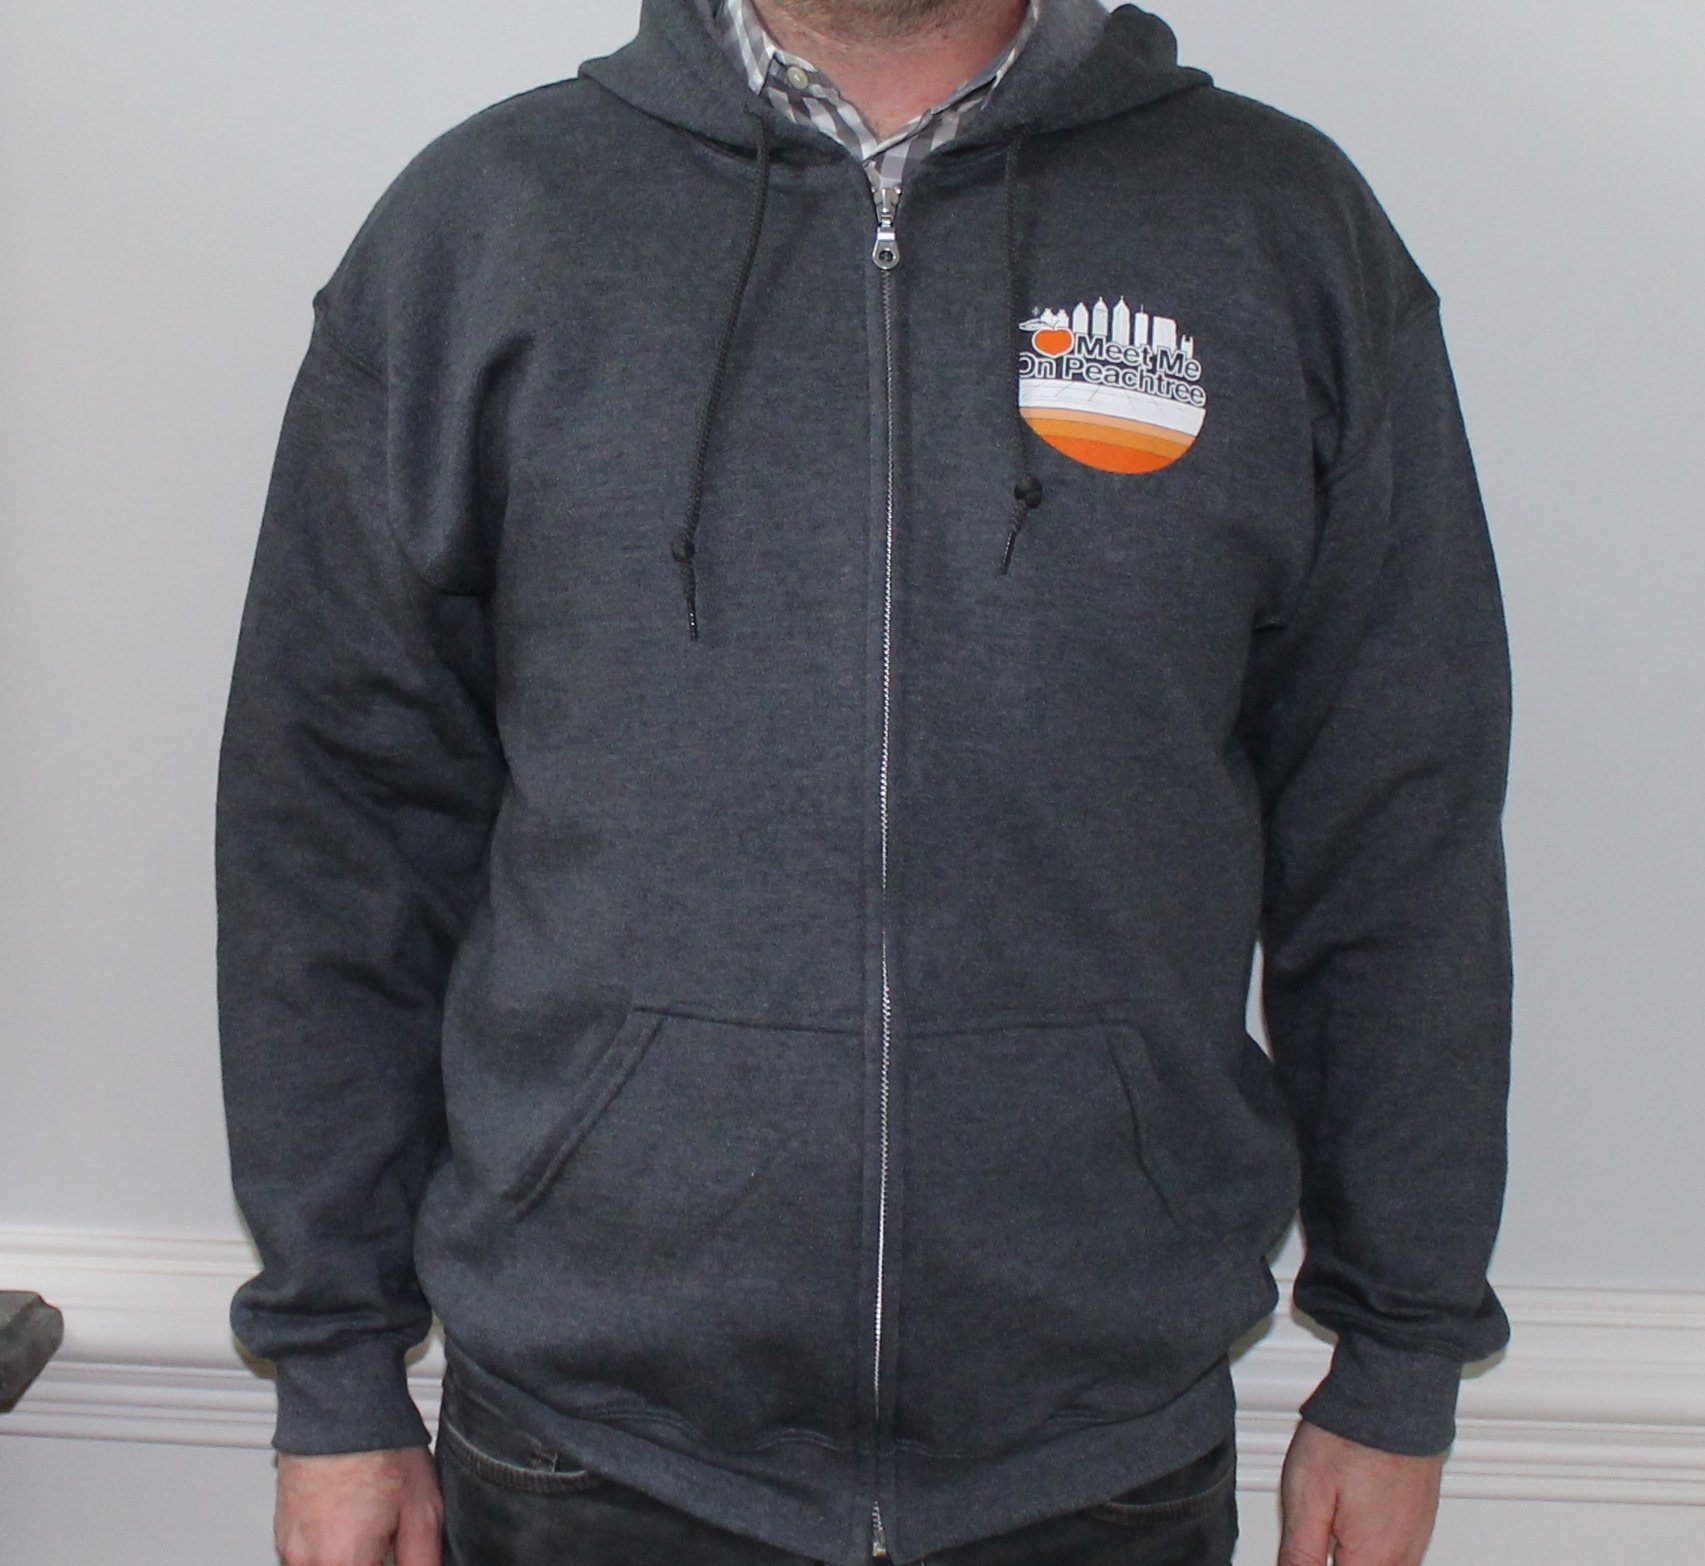 Limited Edition Dark Heather Skyline Full Zip Unisex Hoodie